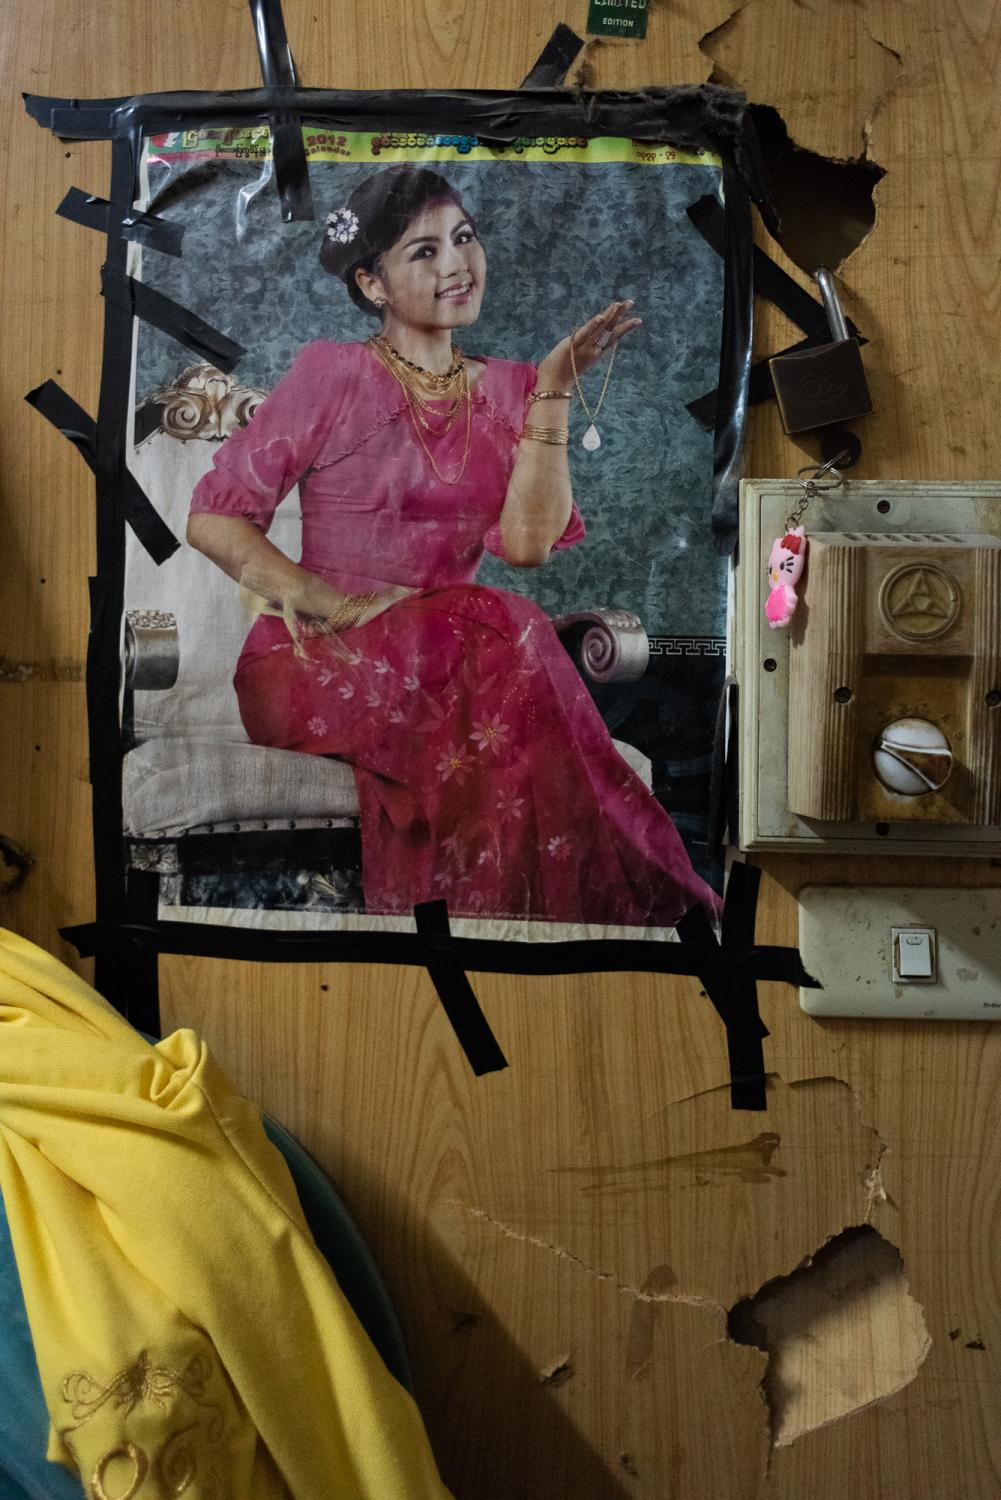 BANGKOK, THAILAND – SEPTEMBER 6, 2018: A poster of a Burmese actress inside a shared apartment of Burmese workers, as a reminder of their home.